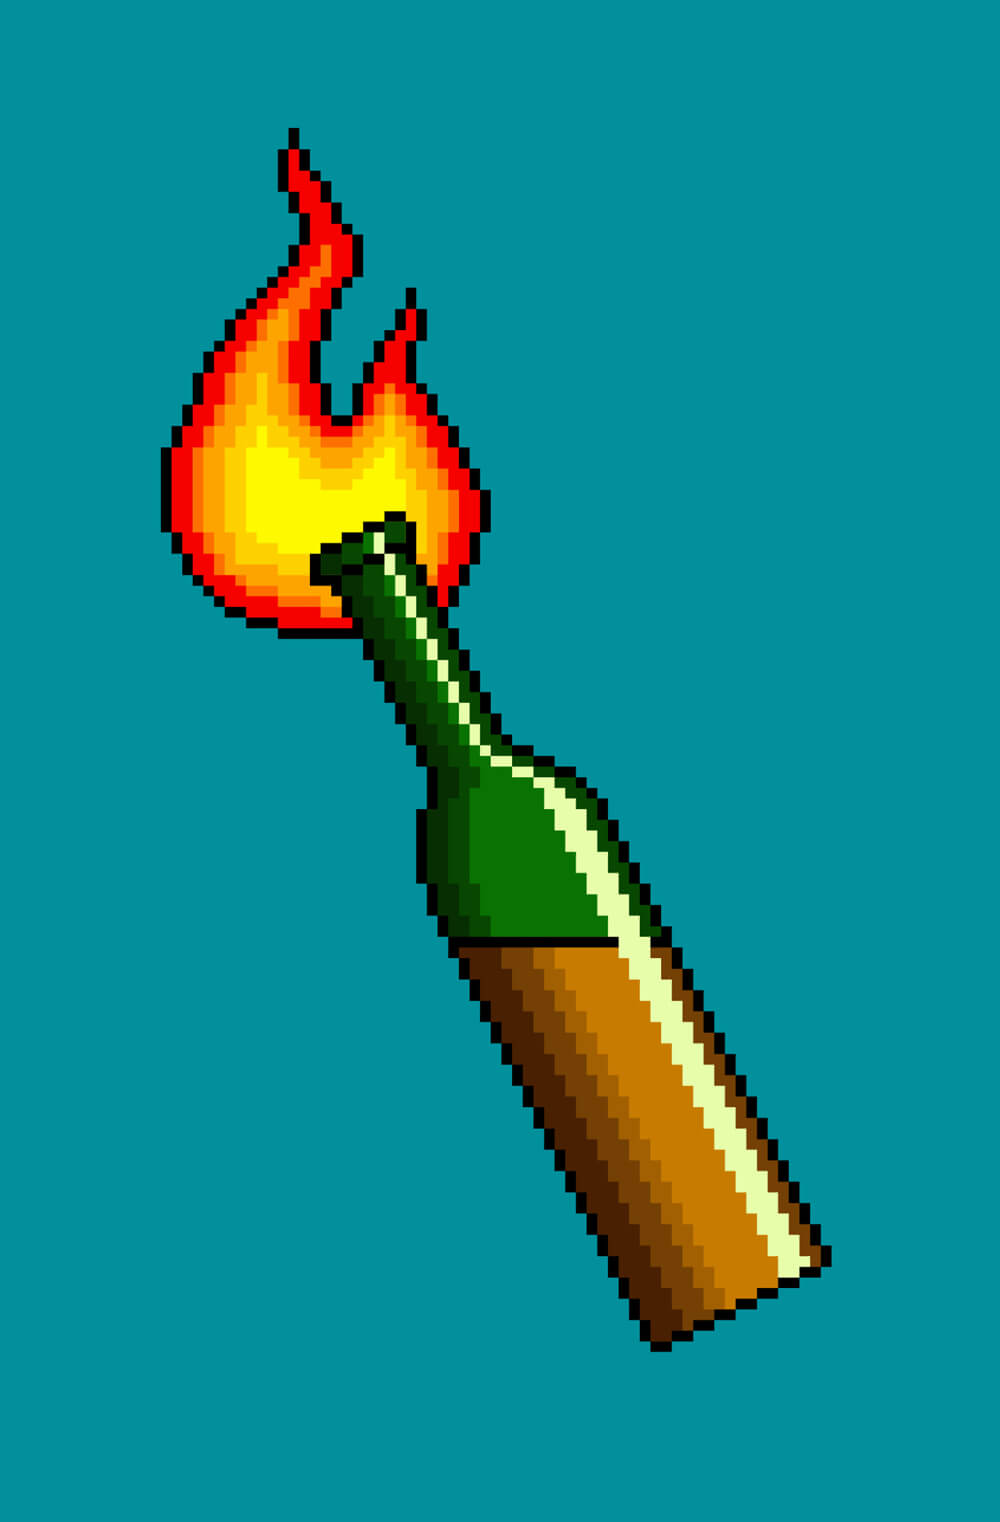 An 8-bit-style illustration of a molotov cocktail.